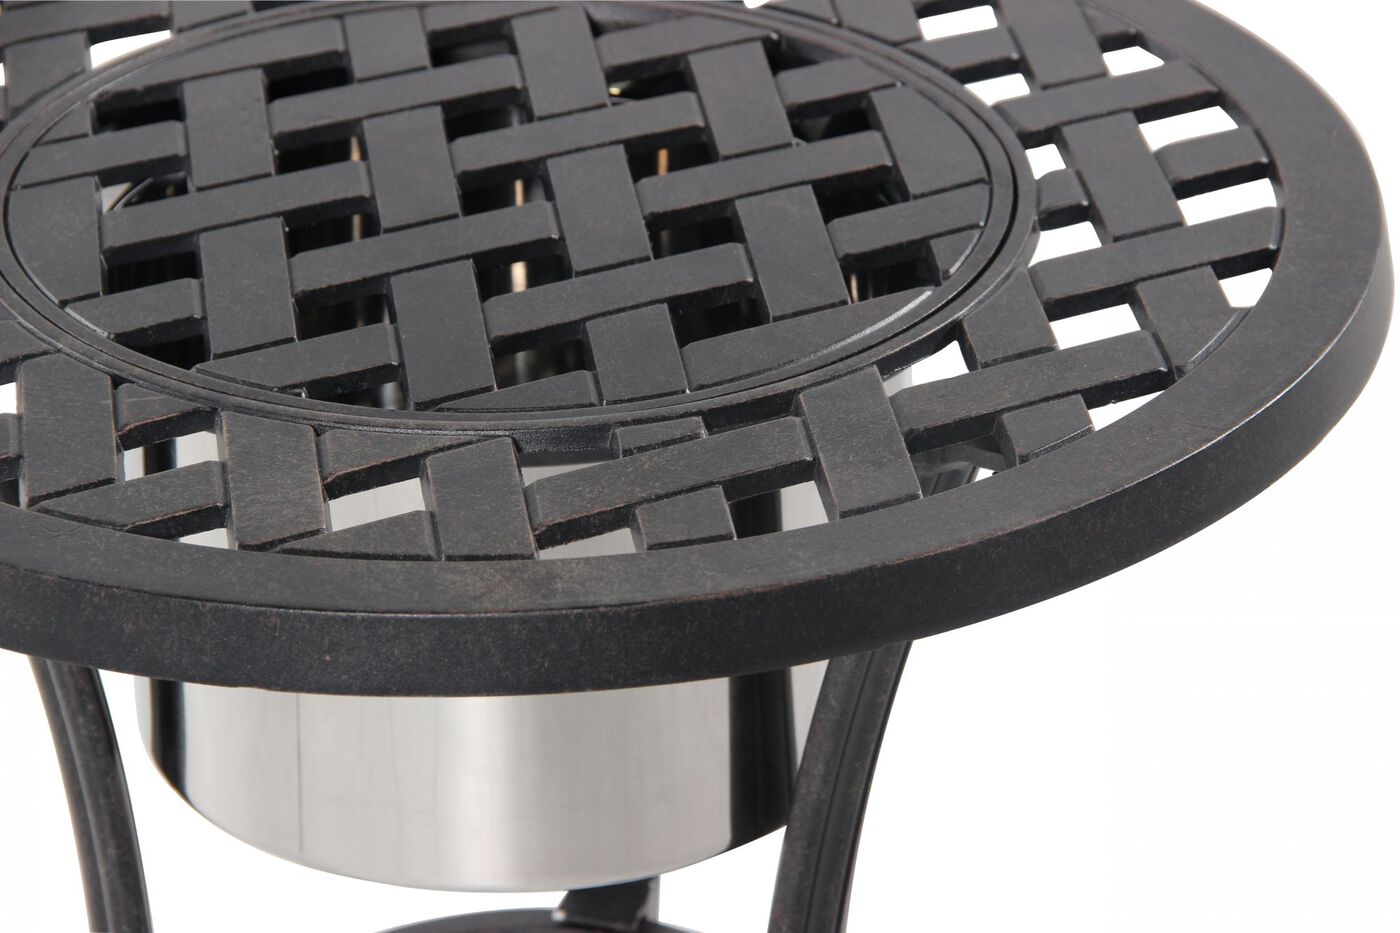 Mathis Brothers Patio Furniture world source castle rock patio ice bucket | mathis brothers furniture